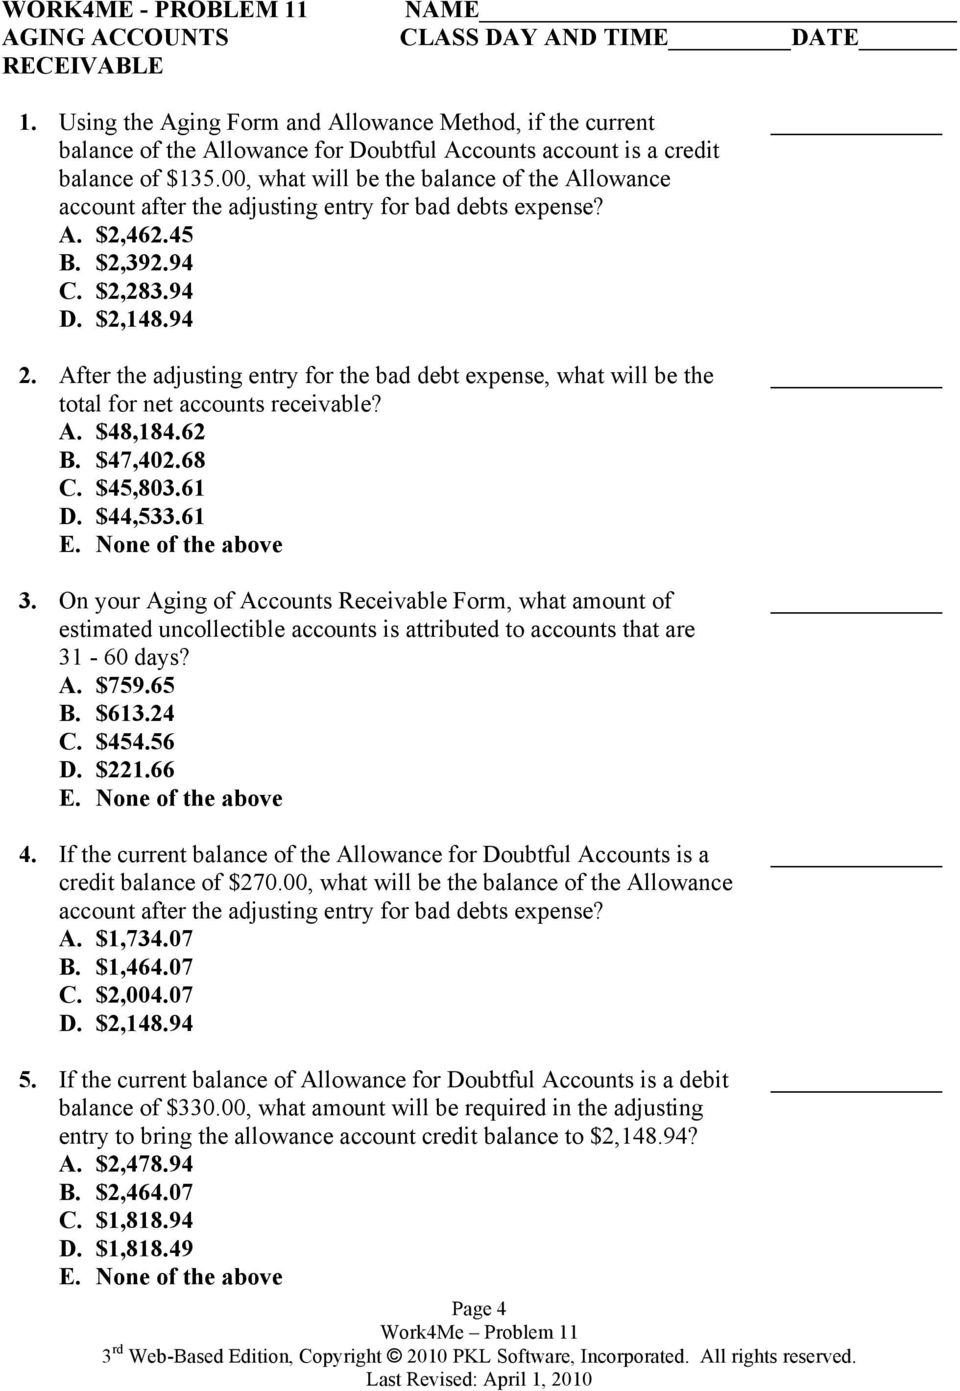 Work4Me Accounting Simulations  Problem Eleven - PDF